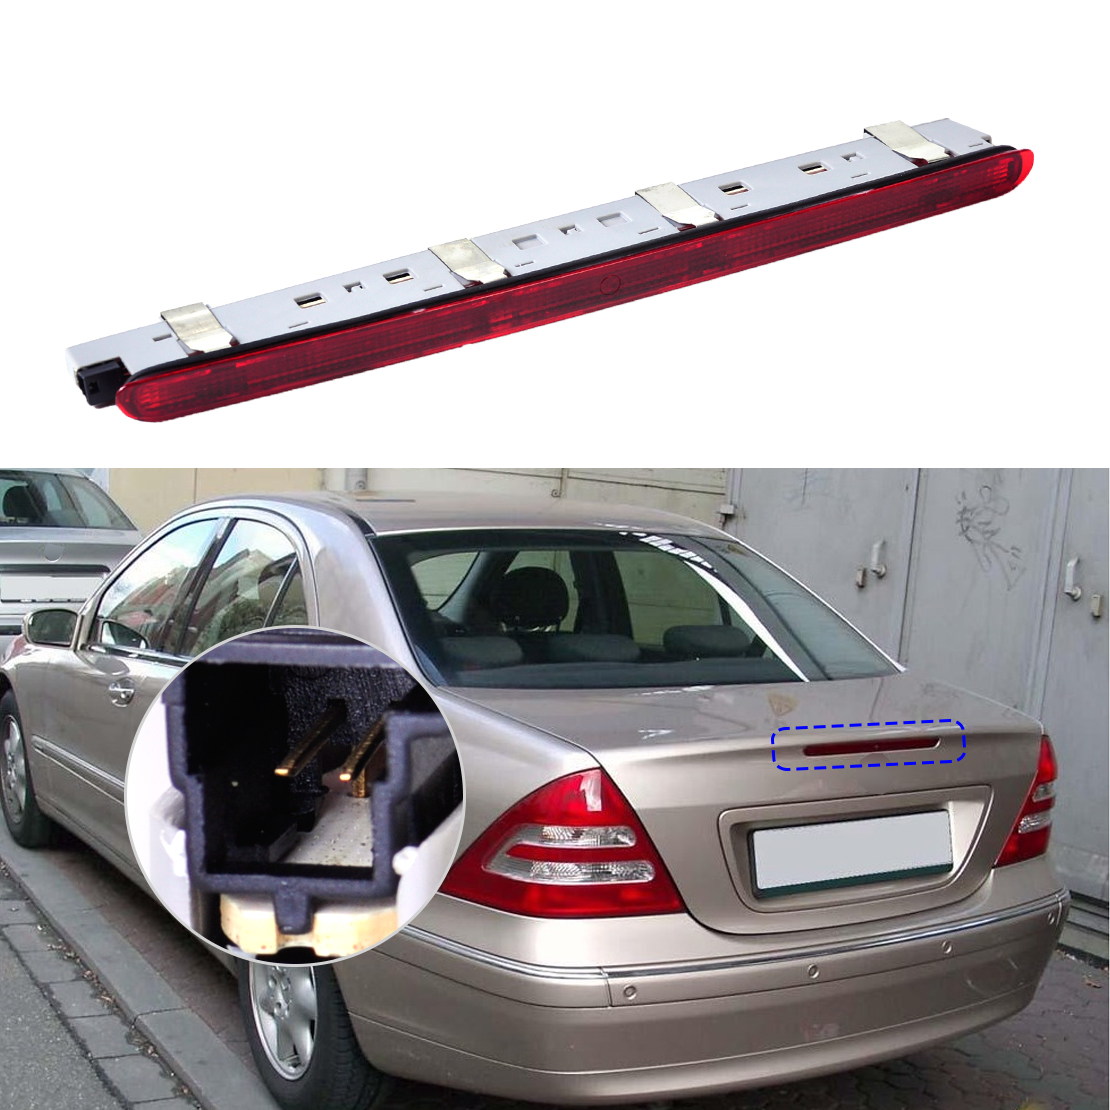 CITALL 2038201456 2038200156 Rear Tail Stop Lamp Third Brake Light fit for Mercedes W203 C230 C240